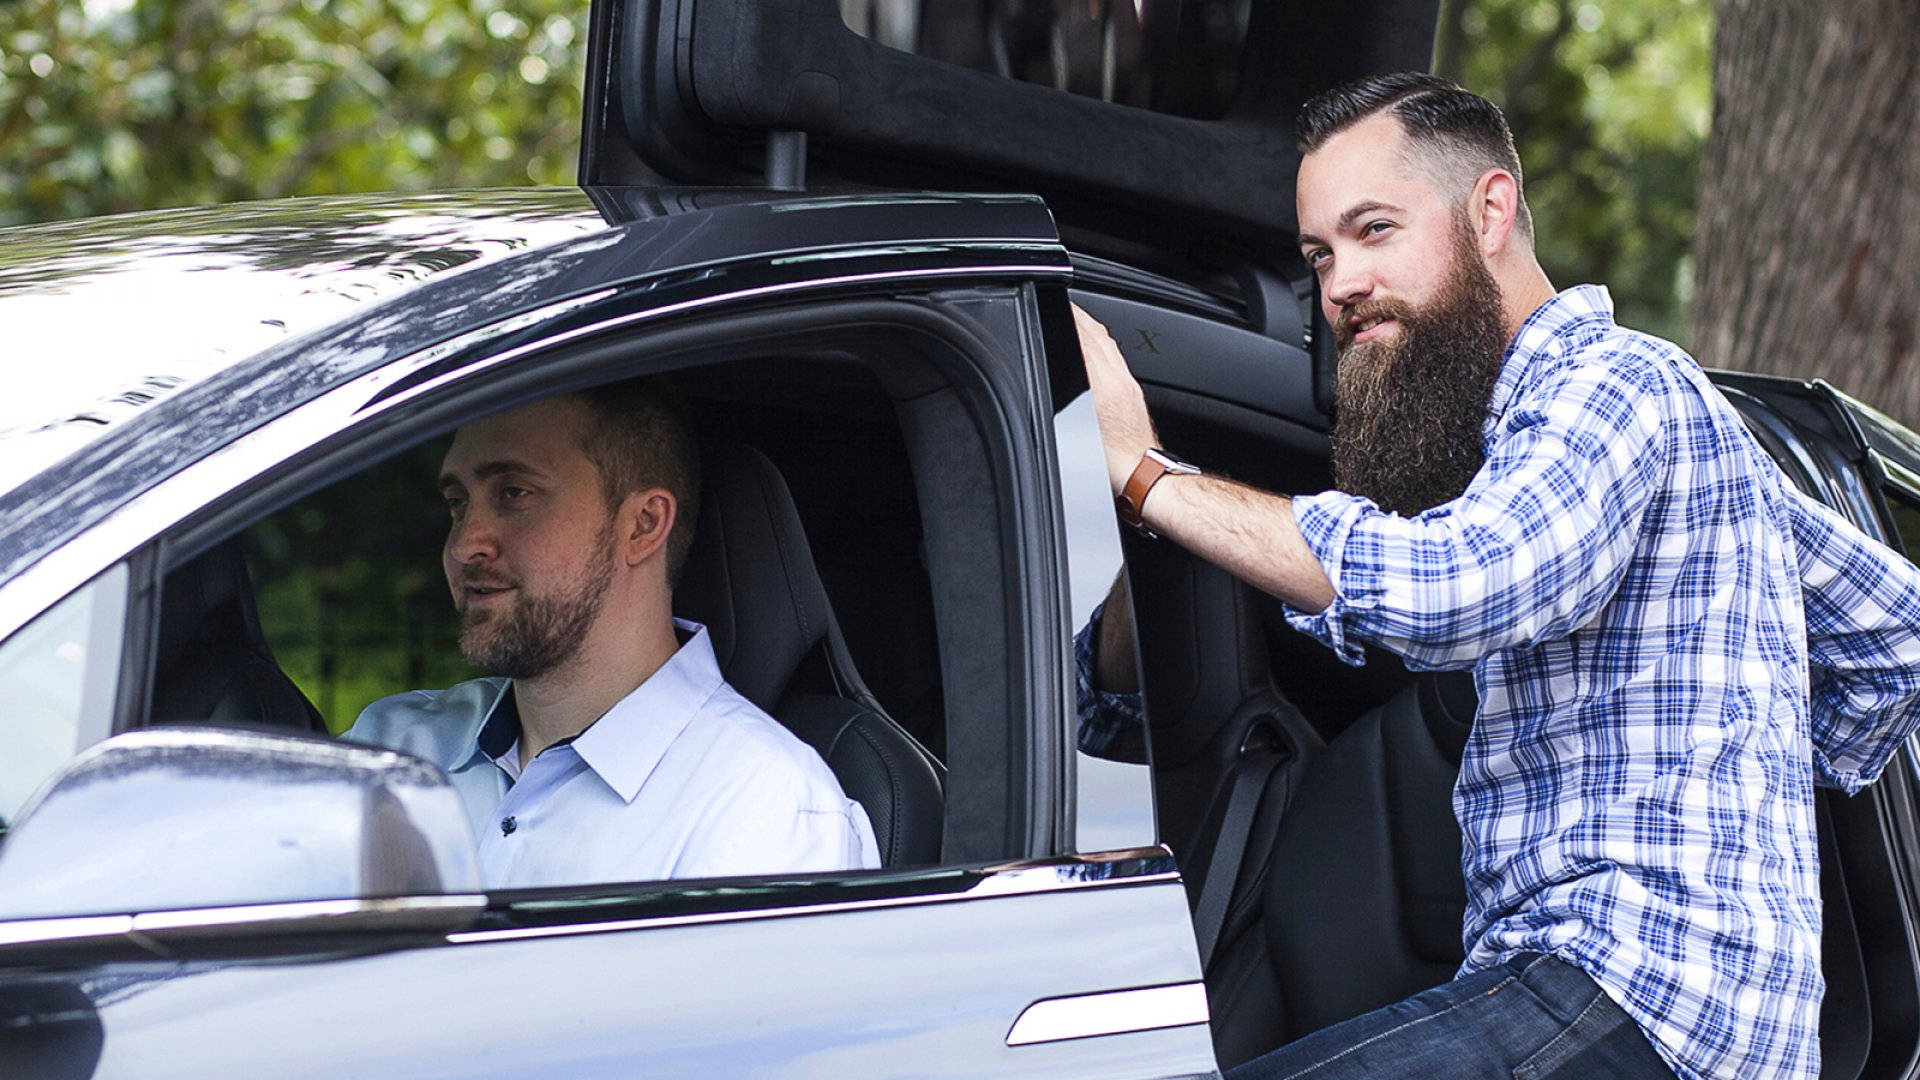 With the absence of Uber and Lyft, Fasten has become one of the premier ride-hailing choices in Austin. It's a breakout candidate app for SXSW 2017.